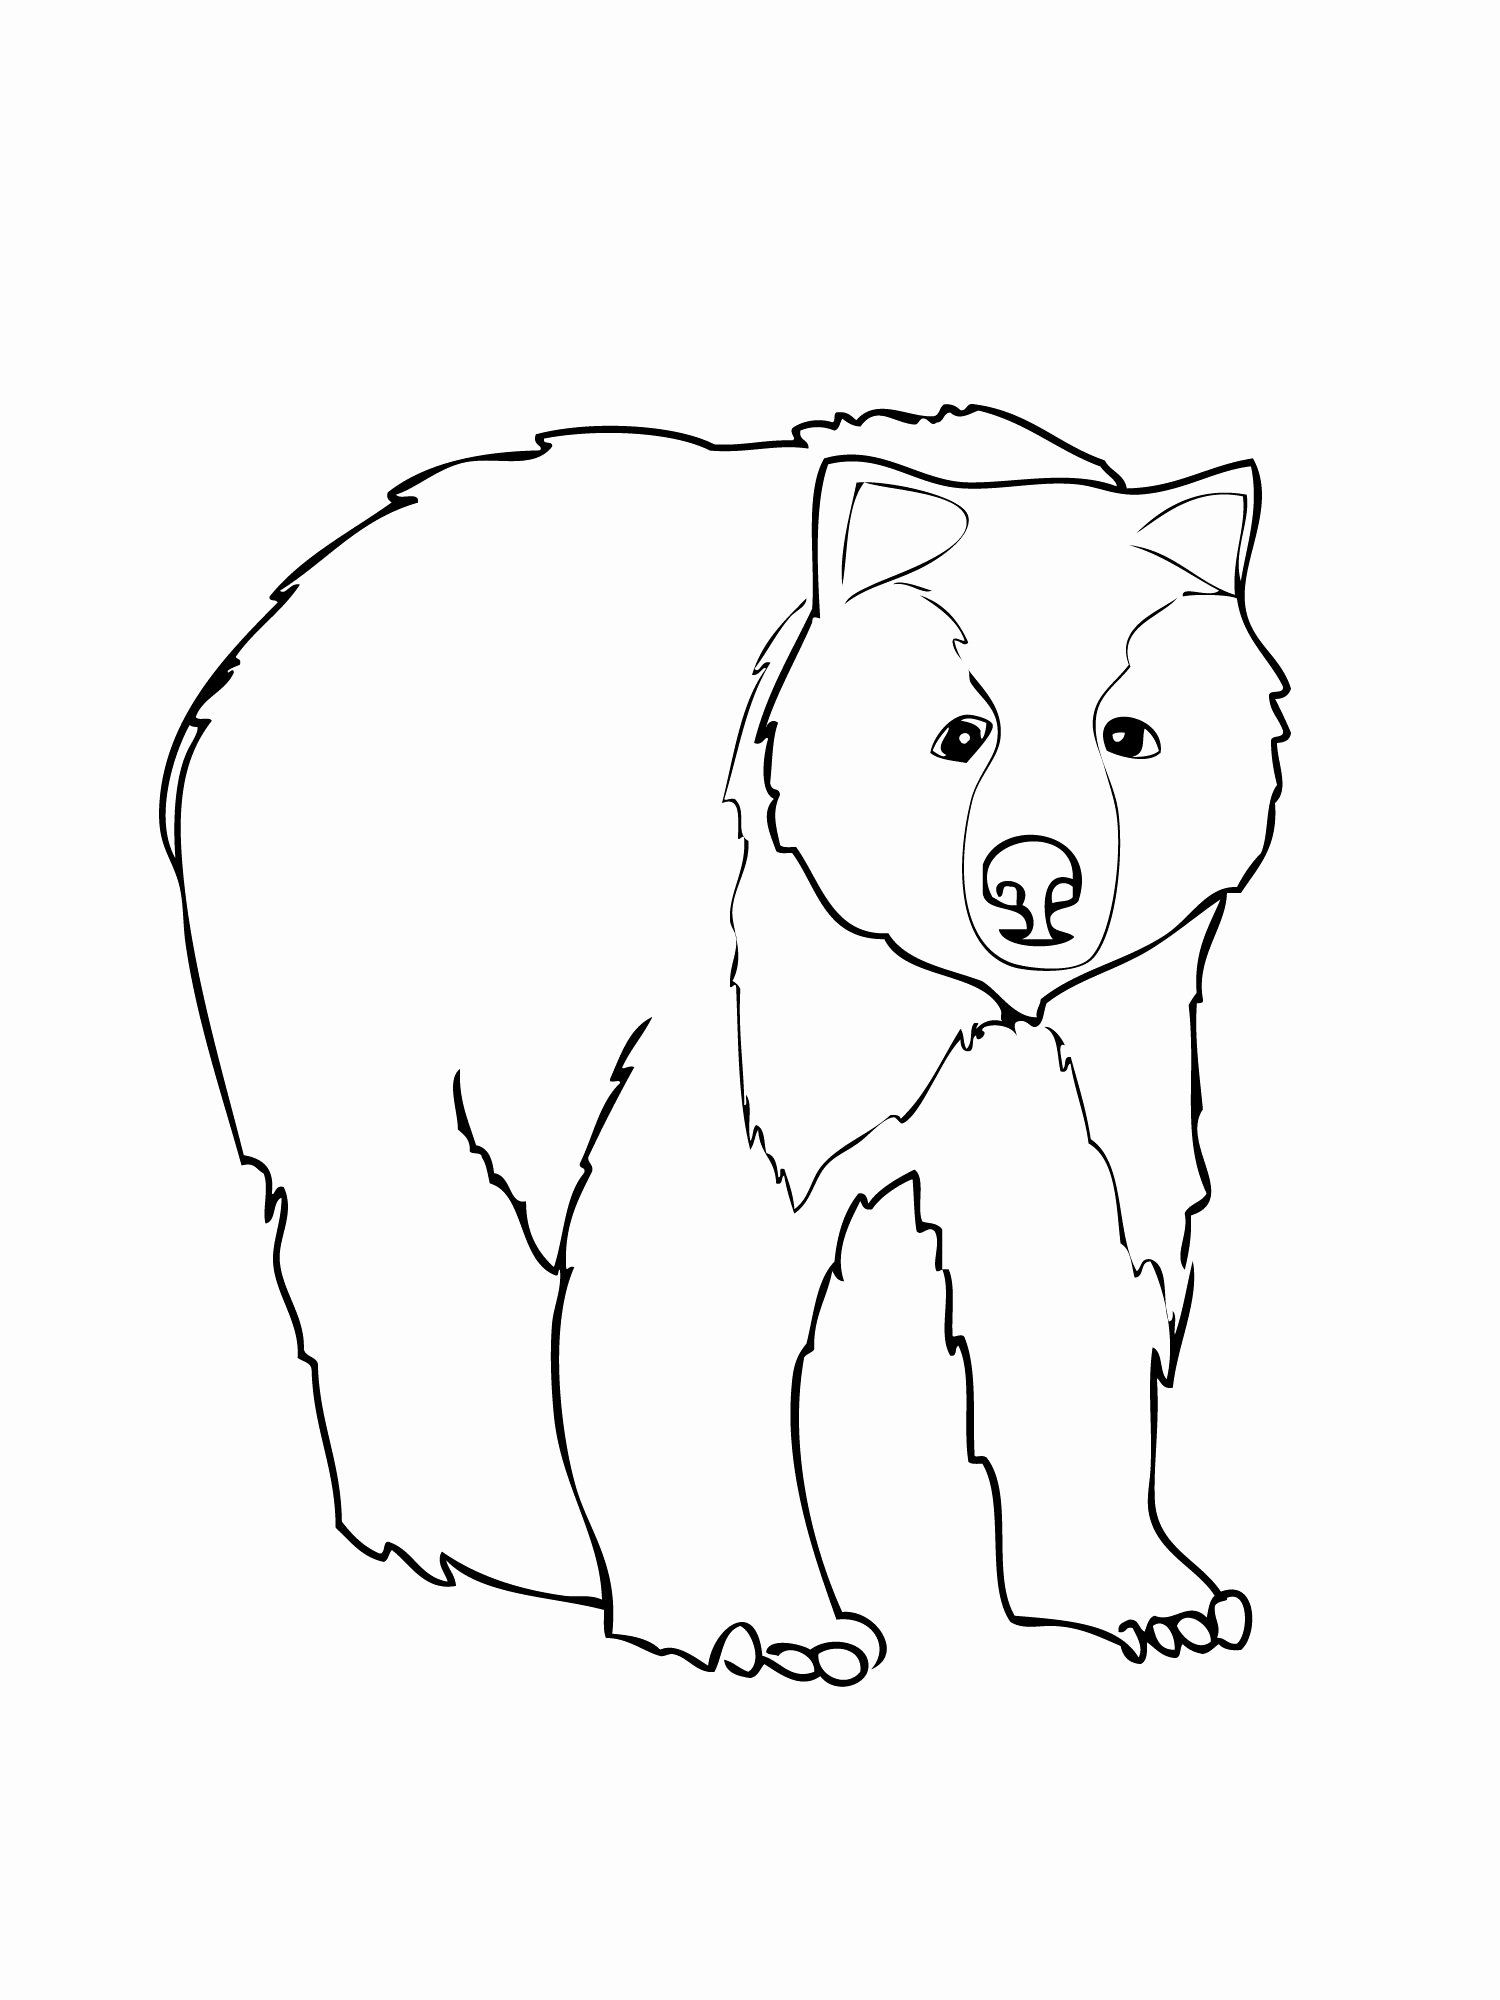 Bear Coloring Pages For Kids Beautiful Black Bear Coloring Pages